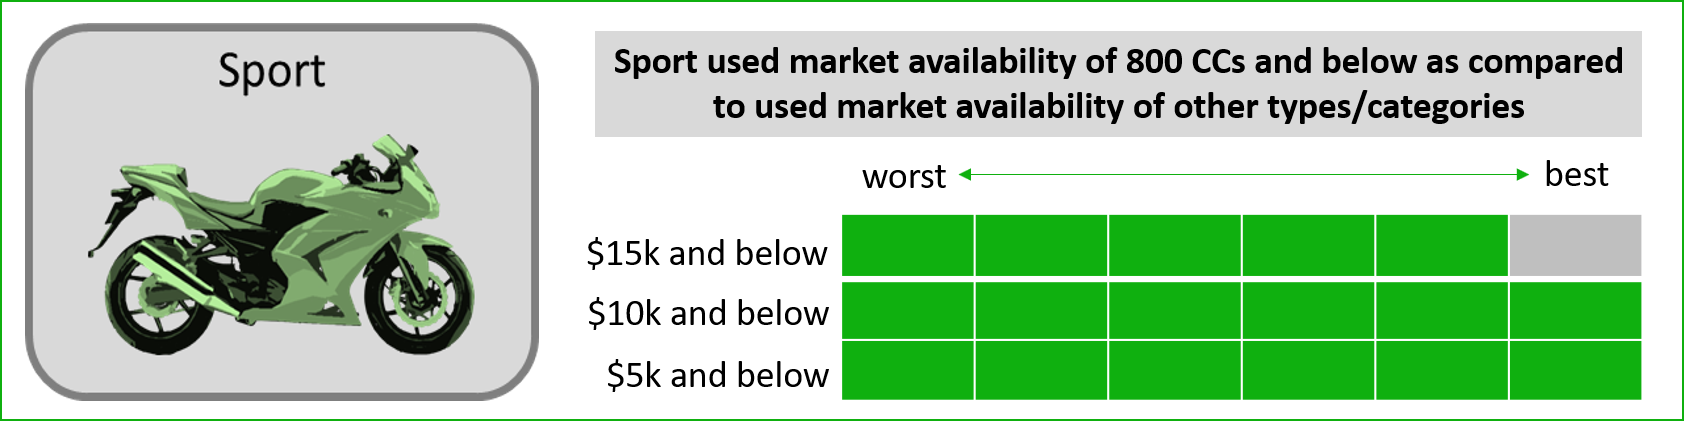 used sport type beginner motorcycle market availability infographic